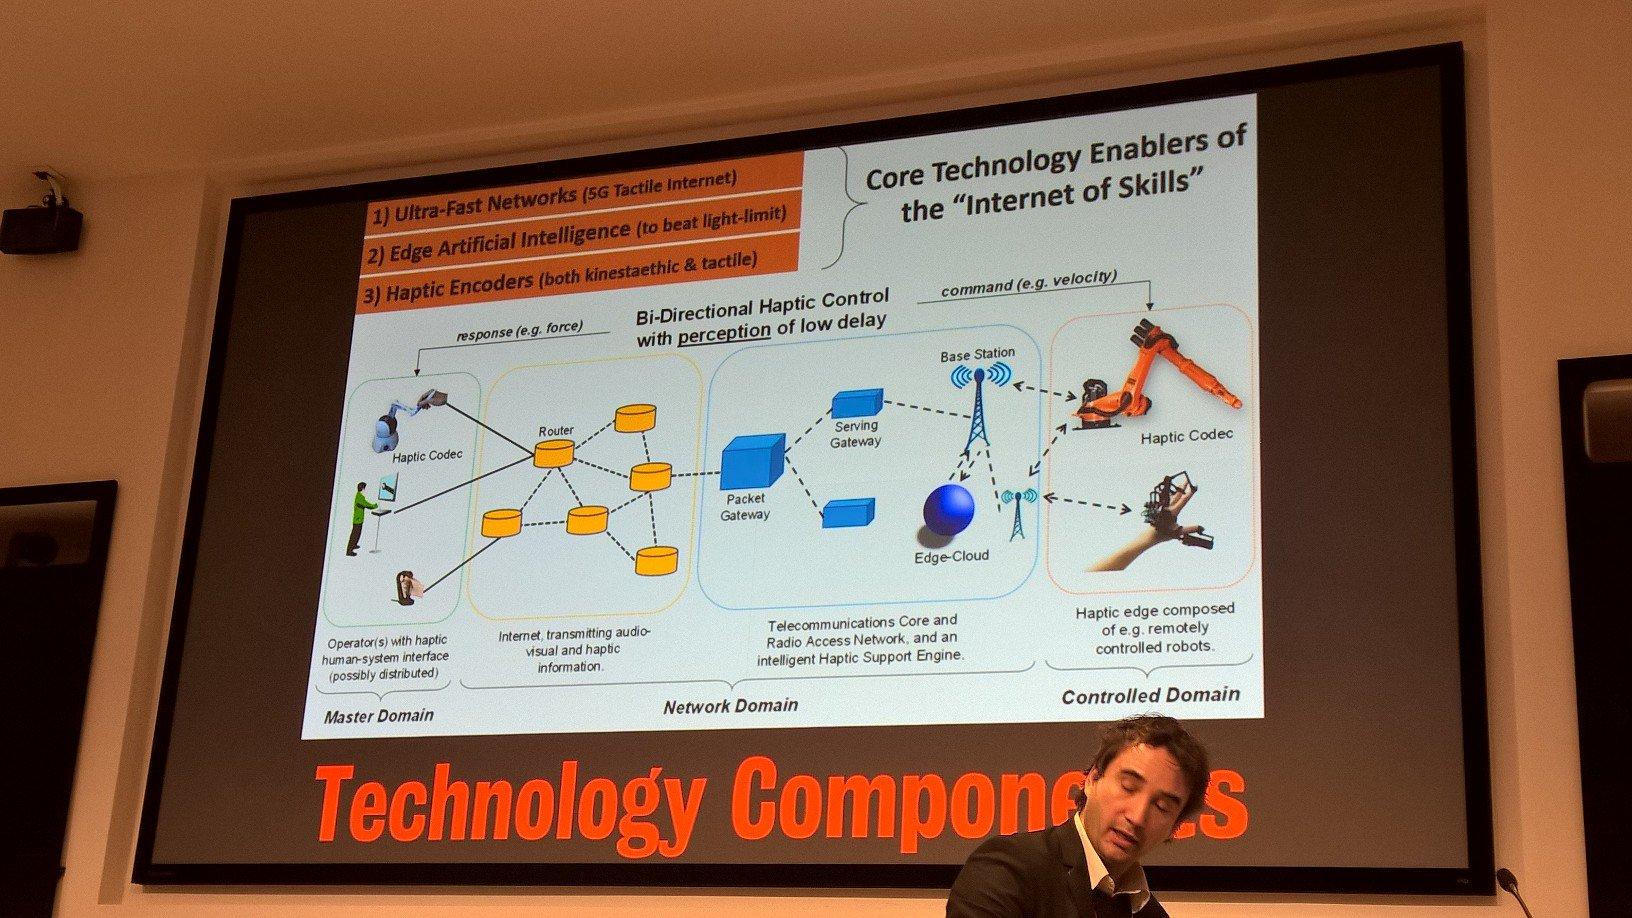 At #towards5g, @MischaDohler proposes #5G enabling human skills to be applied at a long distance, complementing machine LANs in Industry 4.0 https://t.co/ATUouvI7ek